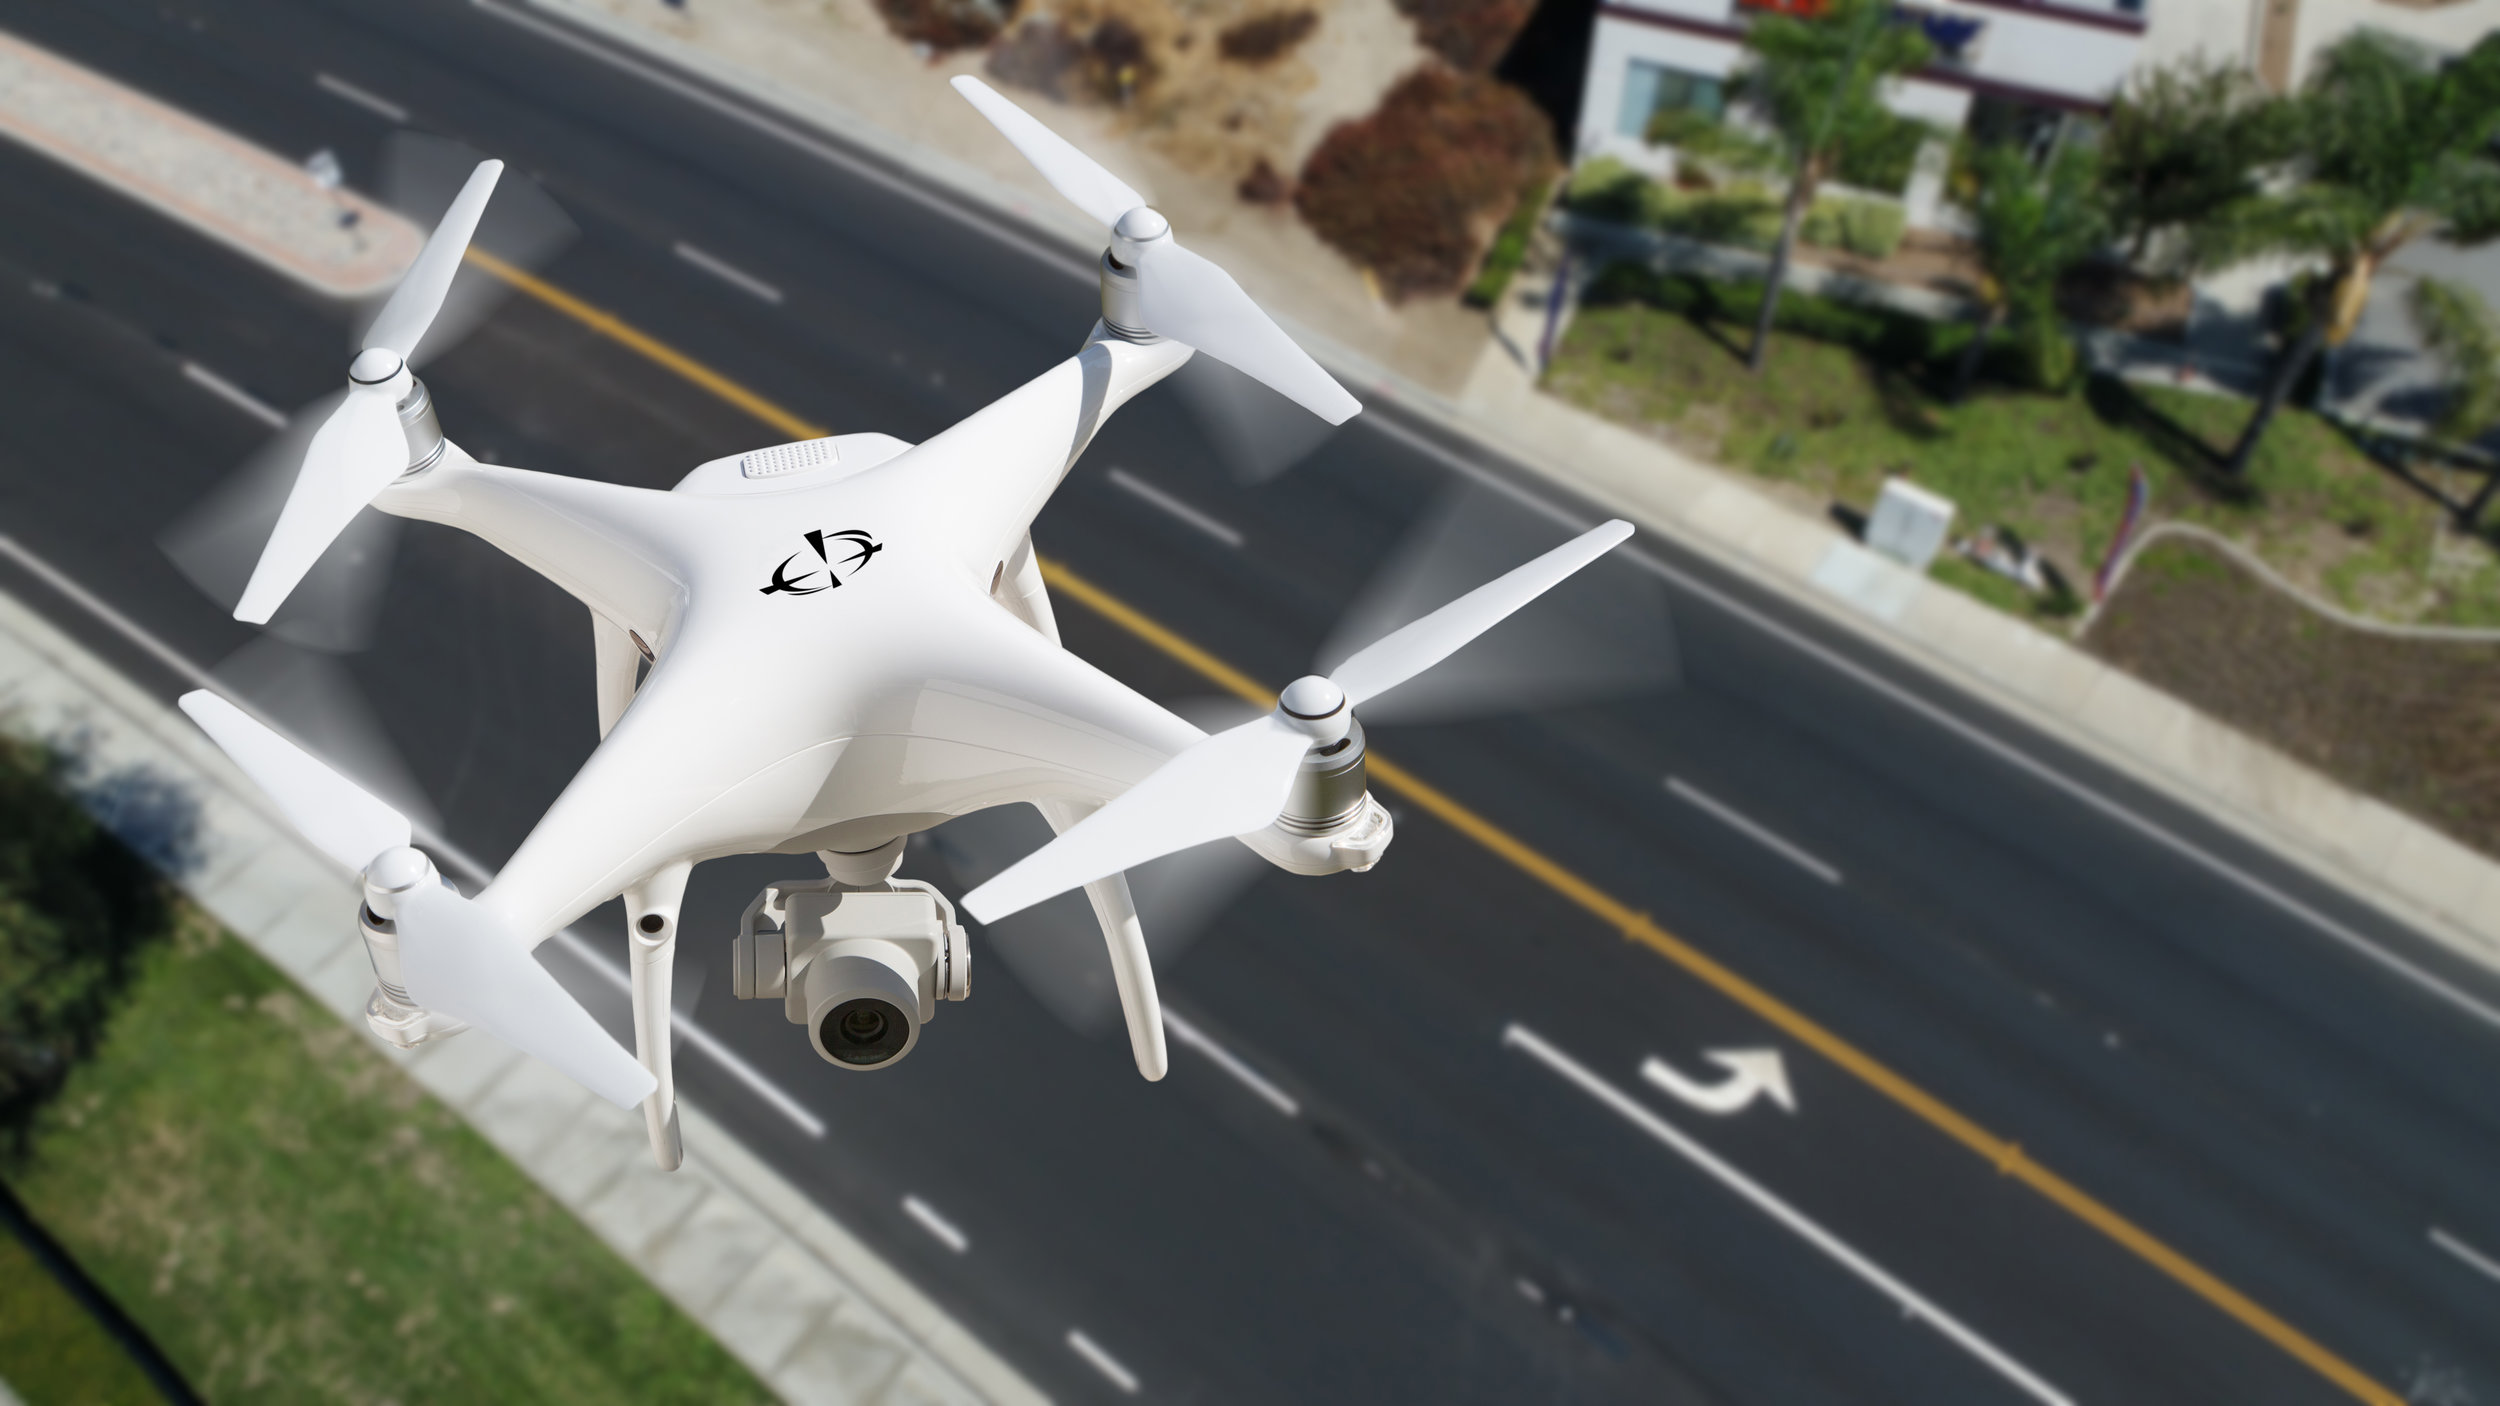 Certified_Drone_Media_AndyDeanPhotography_Drone_0100.jpg